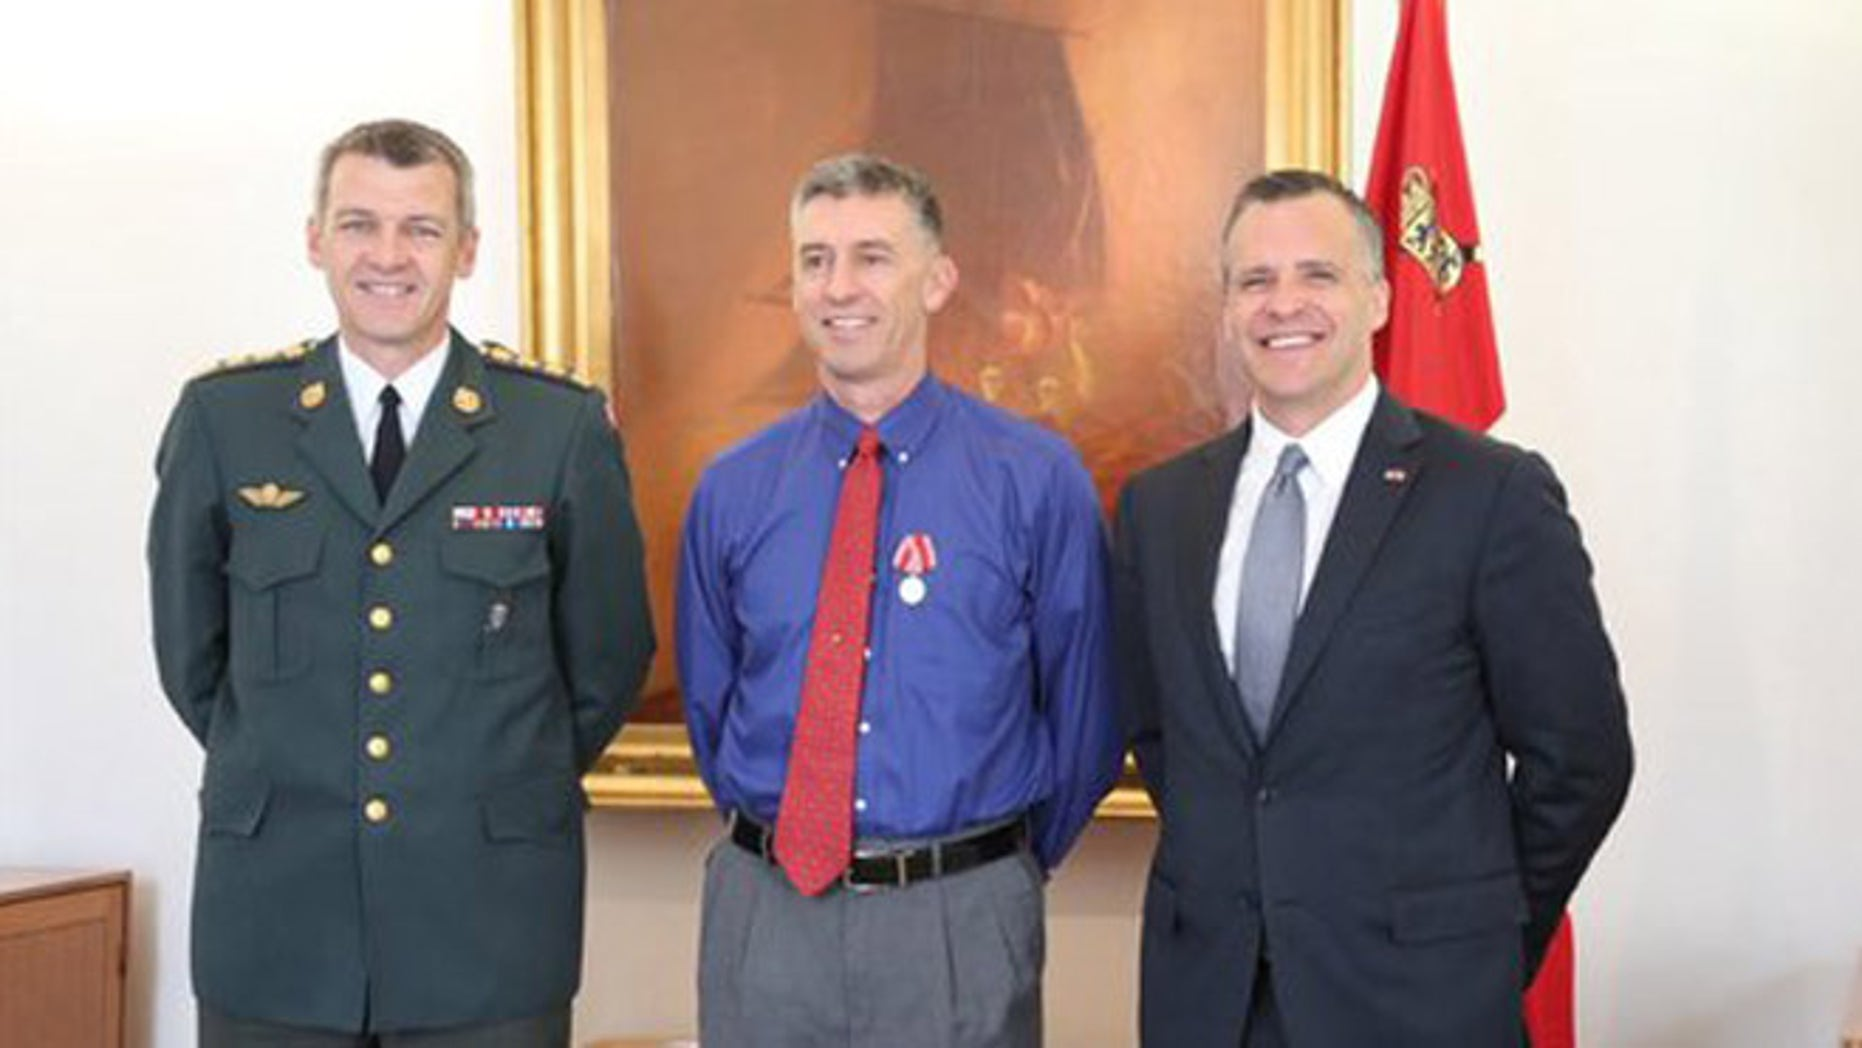 Danish Defense head Peter Bartram, U.S. Army Capt. Bradley Grimm and U.S. Ambassador to Denmark Rufus Gifford at Copenhagen medal ceremony. (Department of Defense)